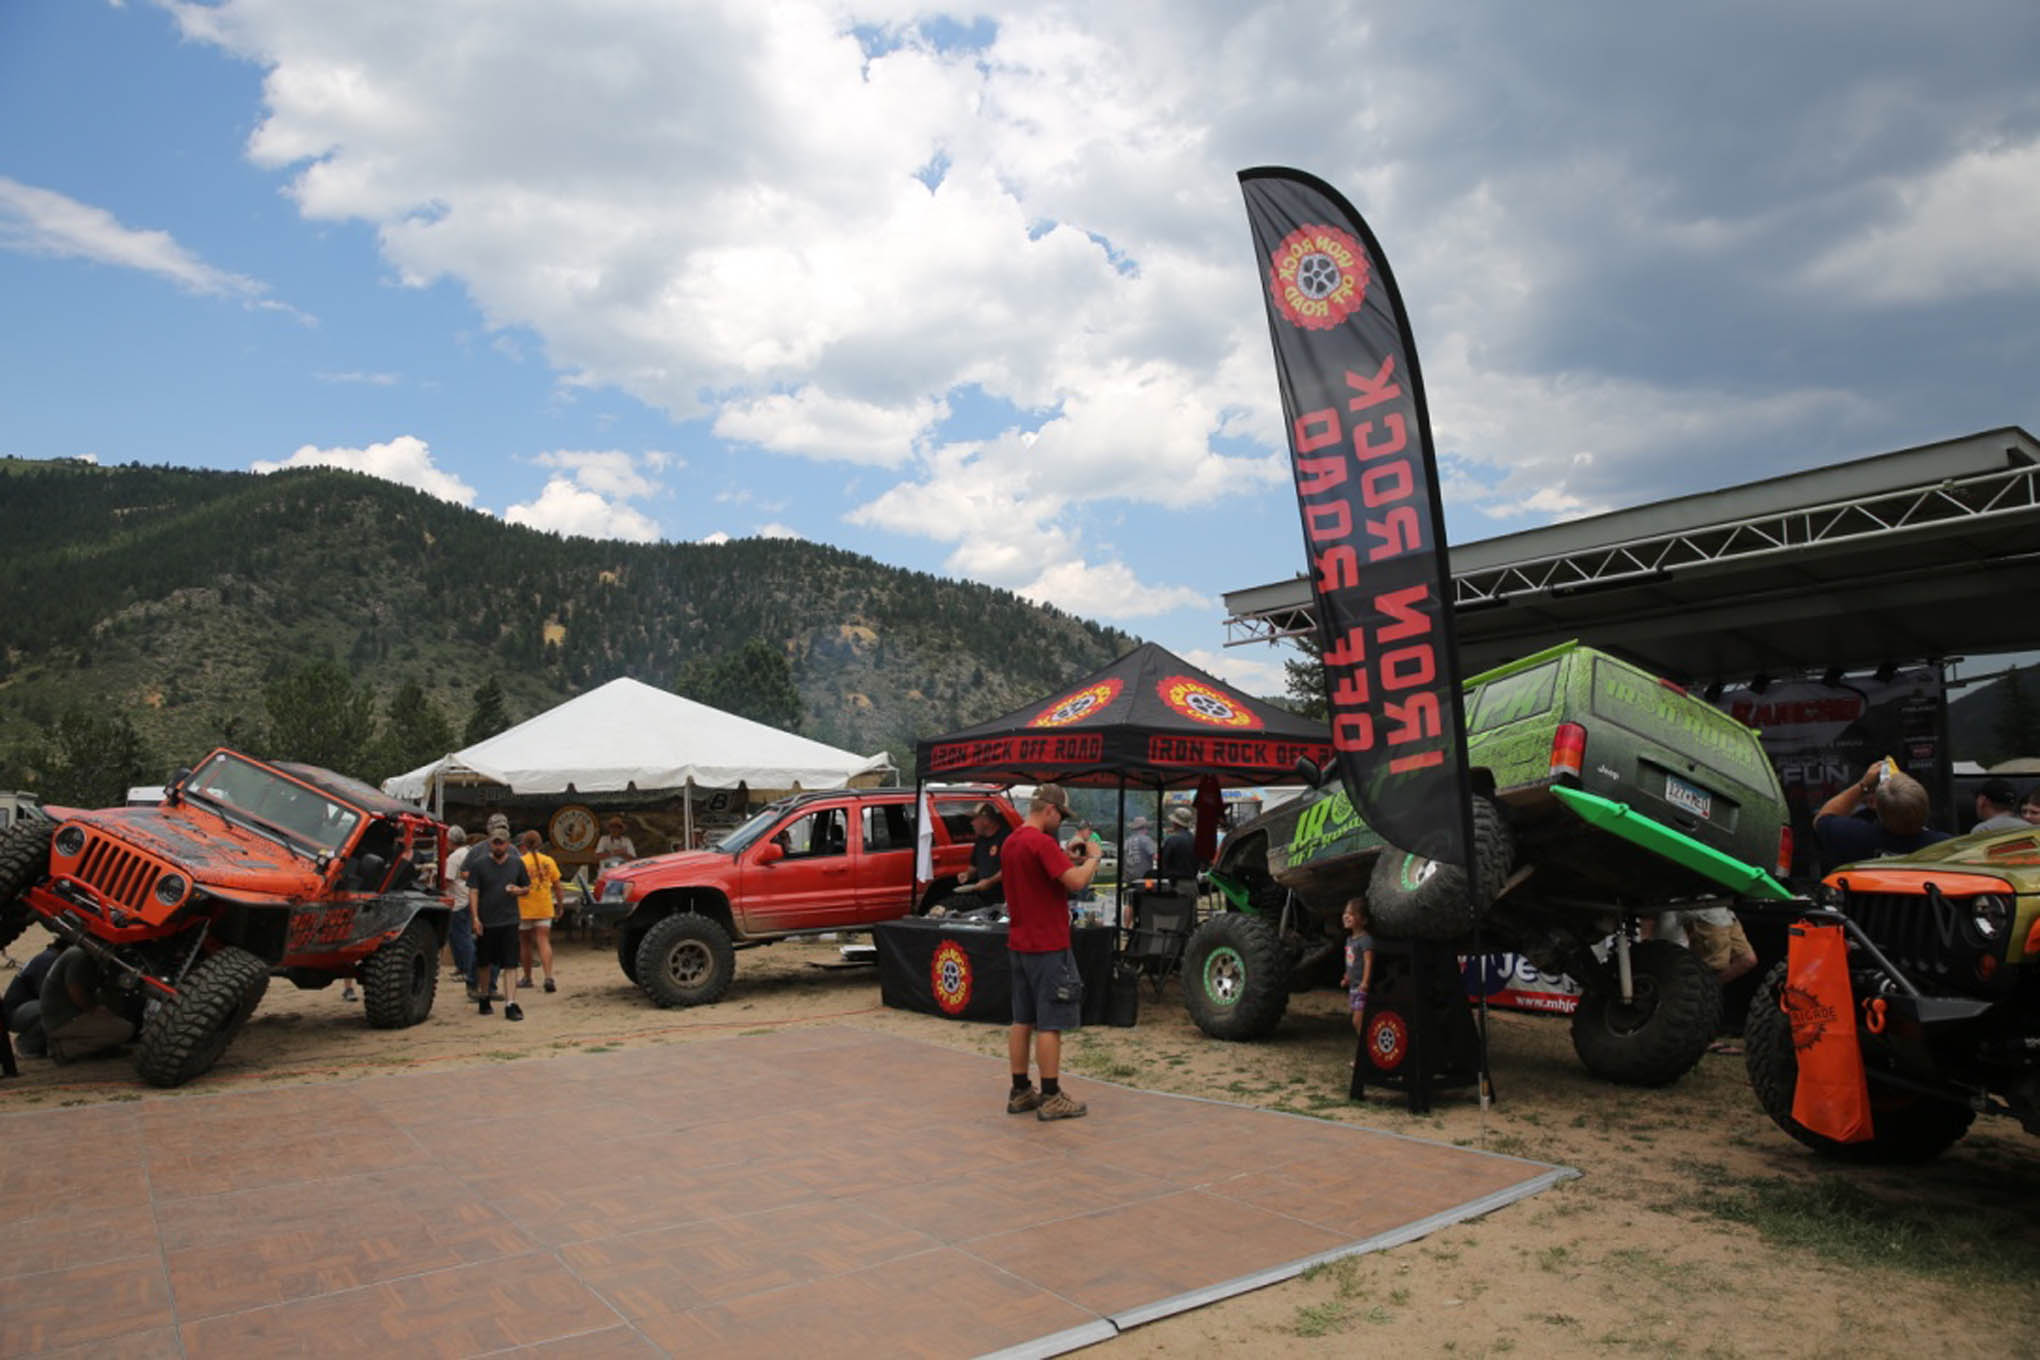 Iron Rock Off Road from Shakopee, Minnesota, was one of a multitude of players in the Jeep aftermarket scene that participated in the event.